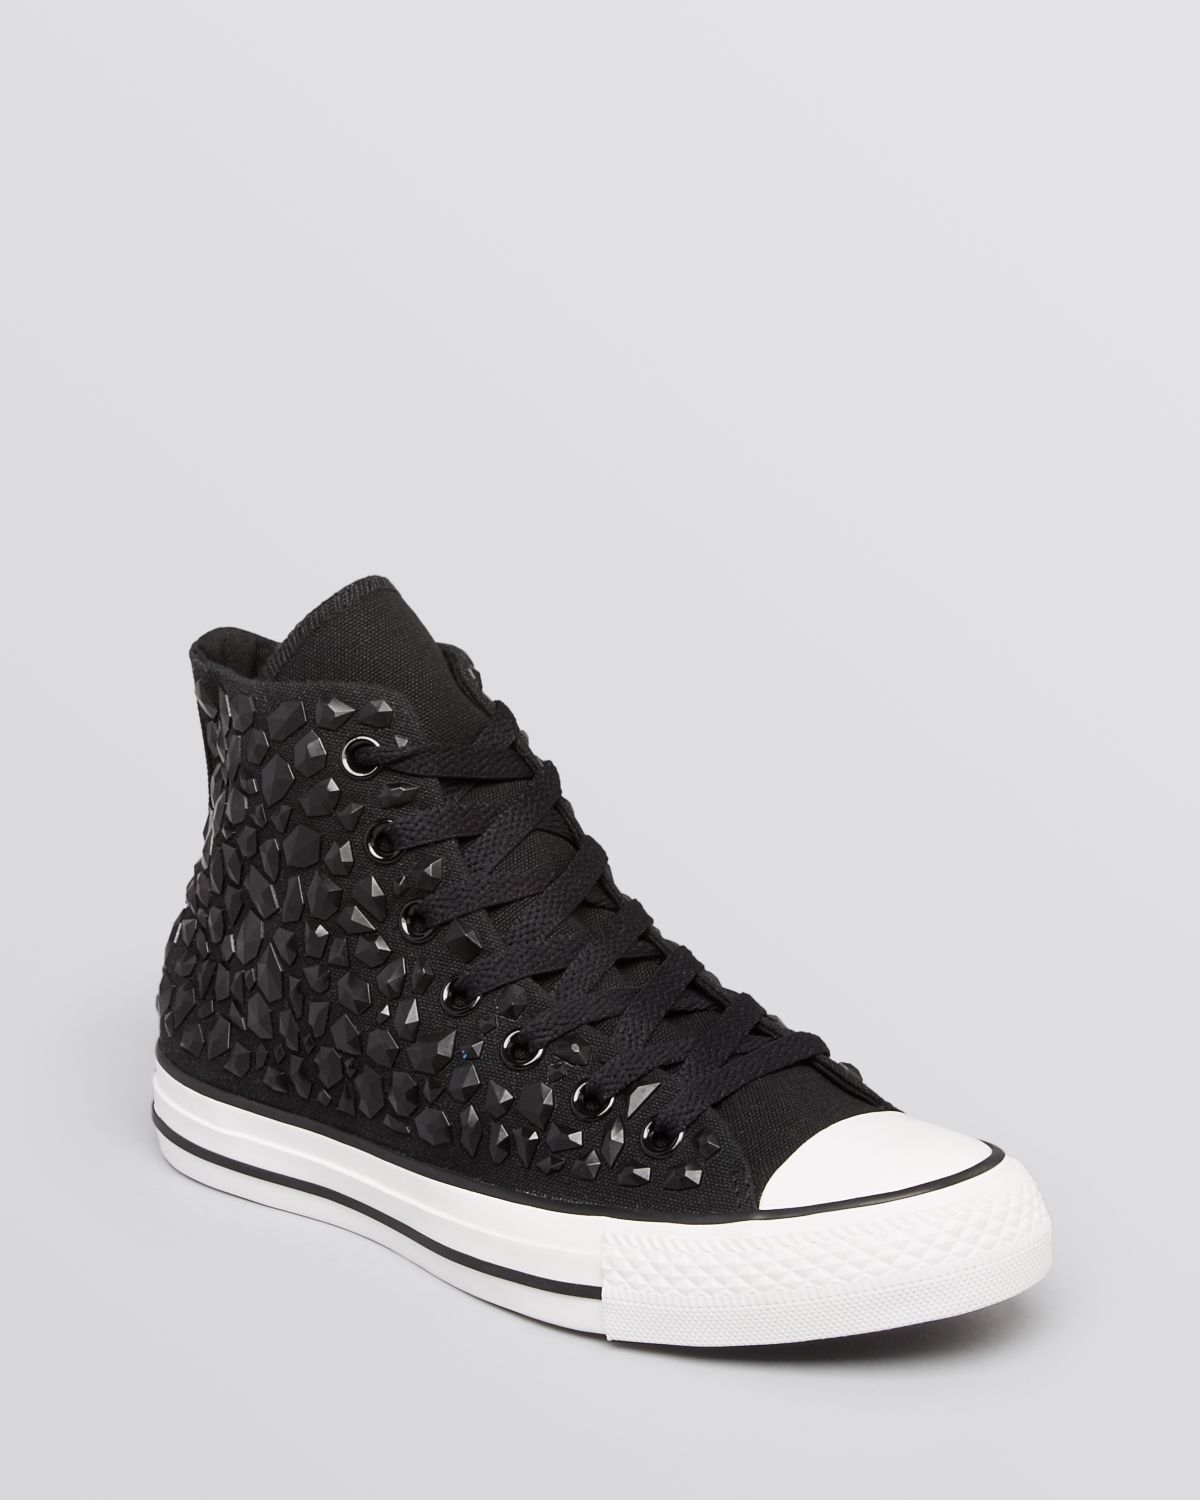 ea8a829033a1 Lyst - Converse Lace Up High Top Sneakers All Star Rhinestone in Black